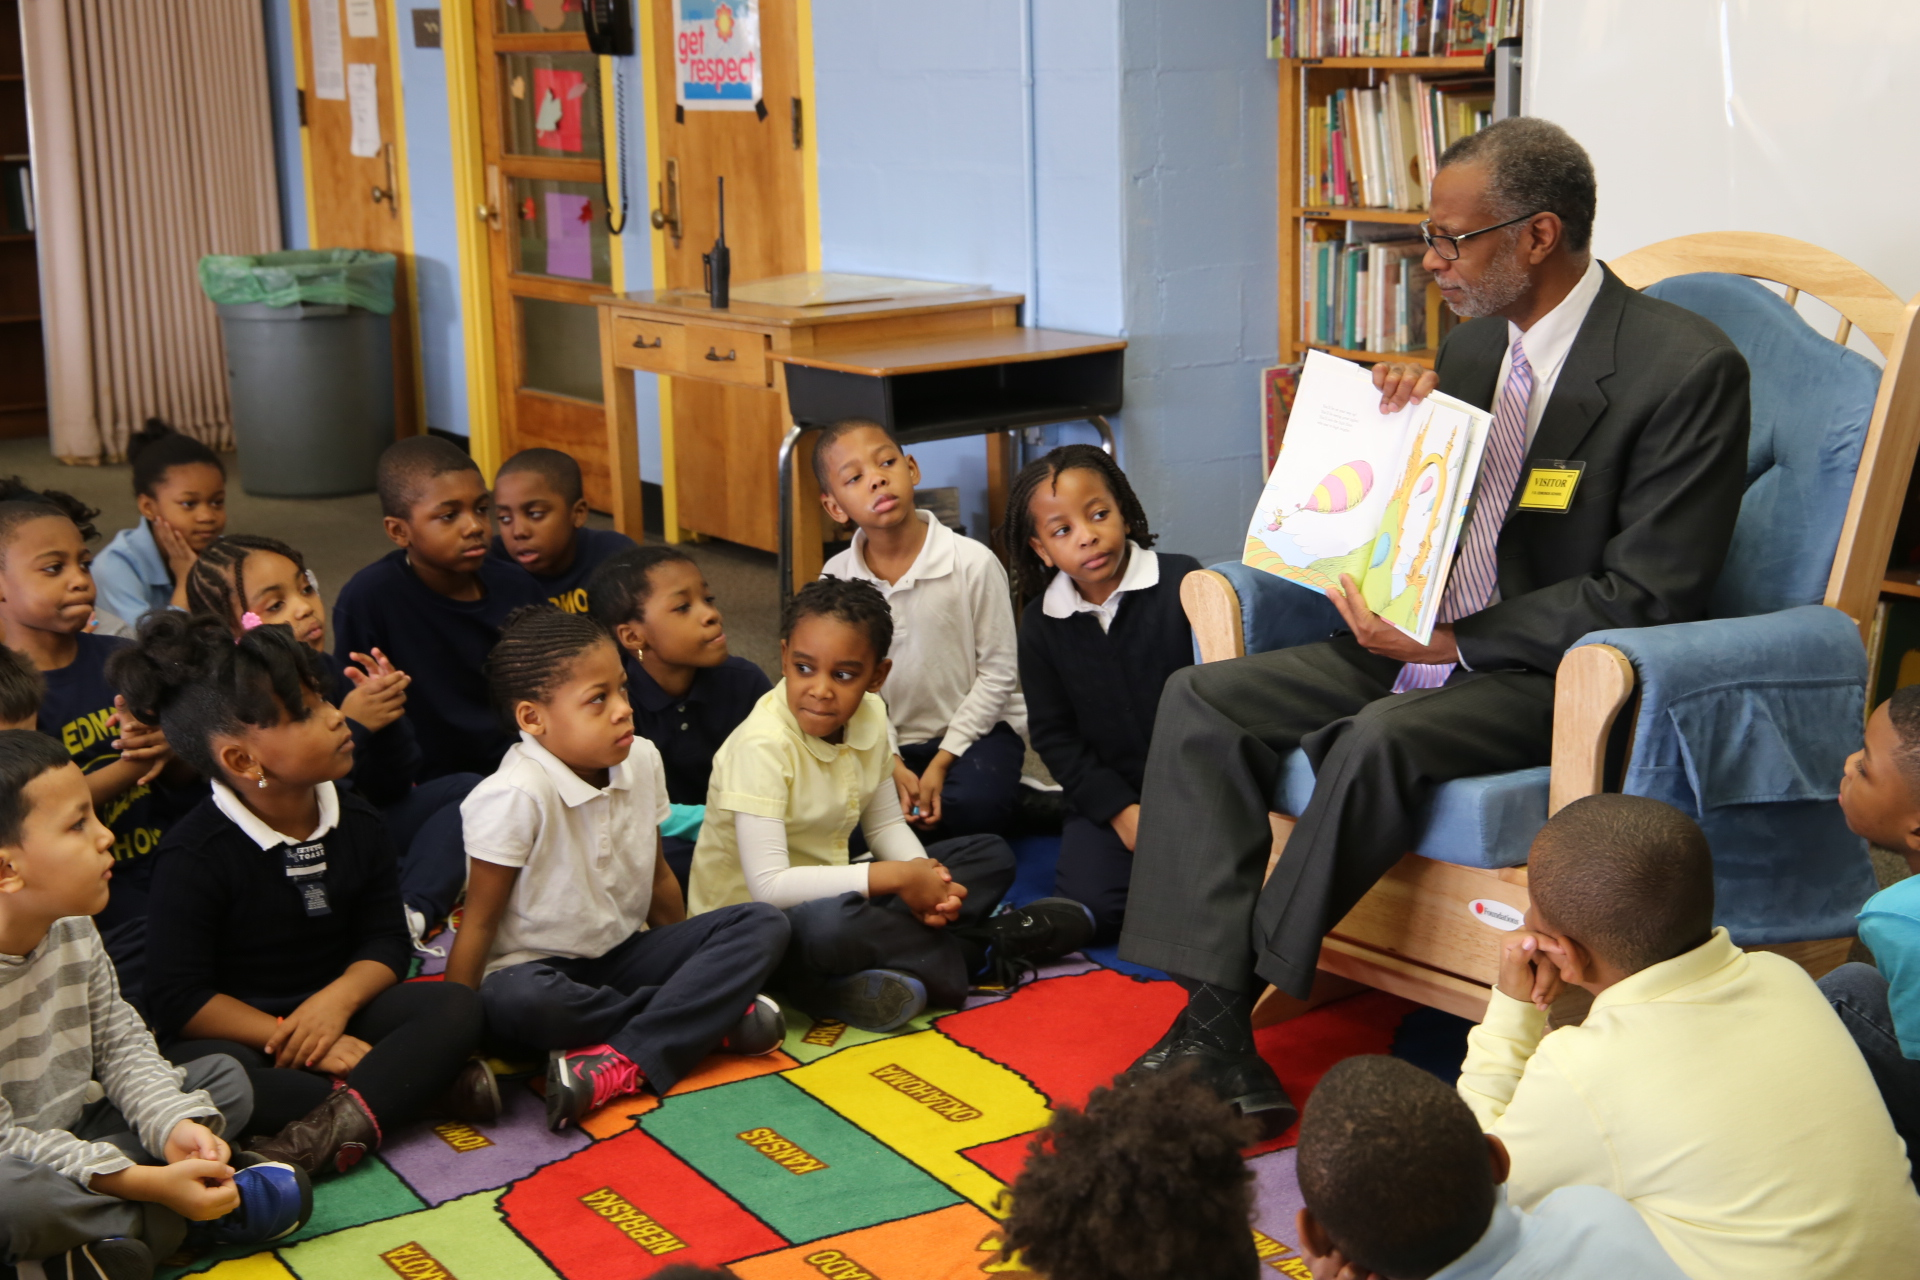 March 2, 2016: Sen. Haywood reads to children at Edmonds Elementary School for Read Across America Day.